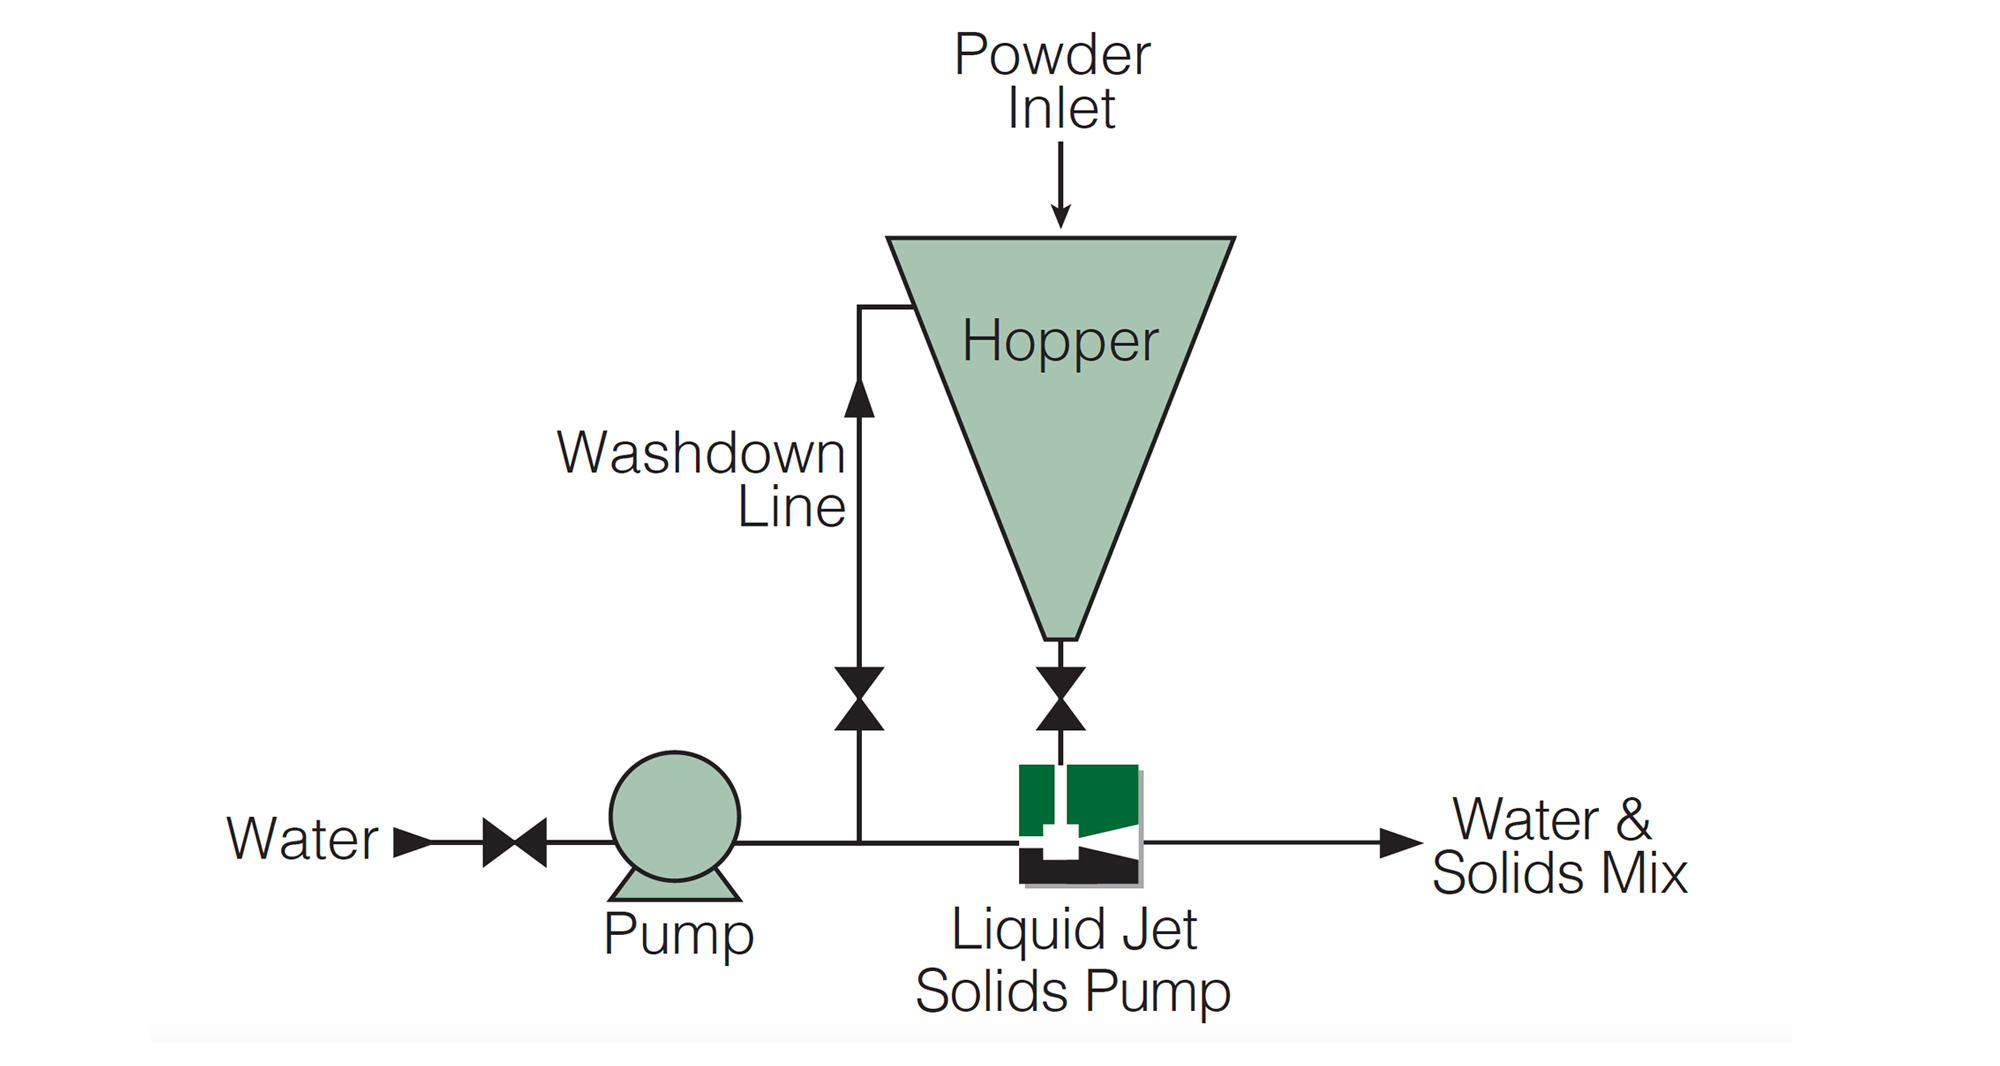 Ejector with Hopper for dosing powder into water